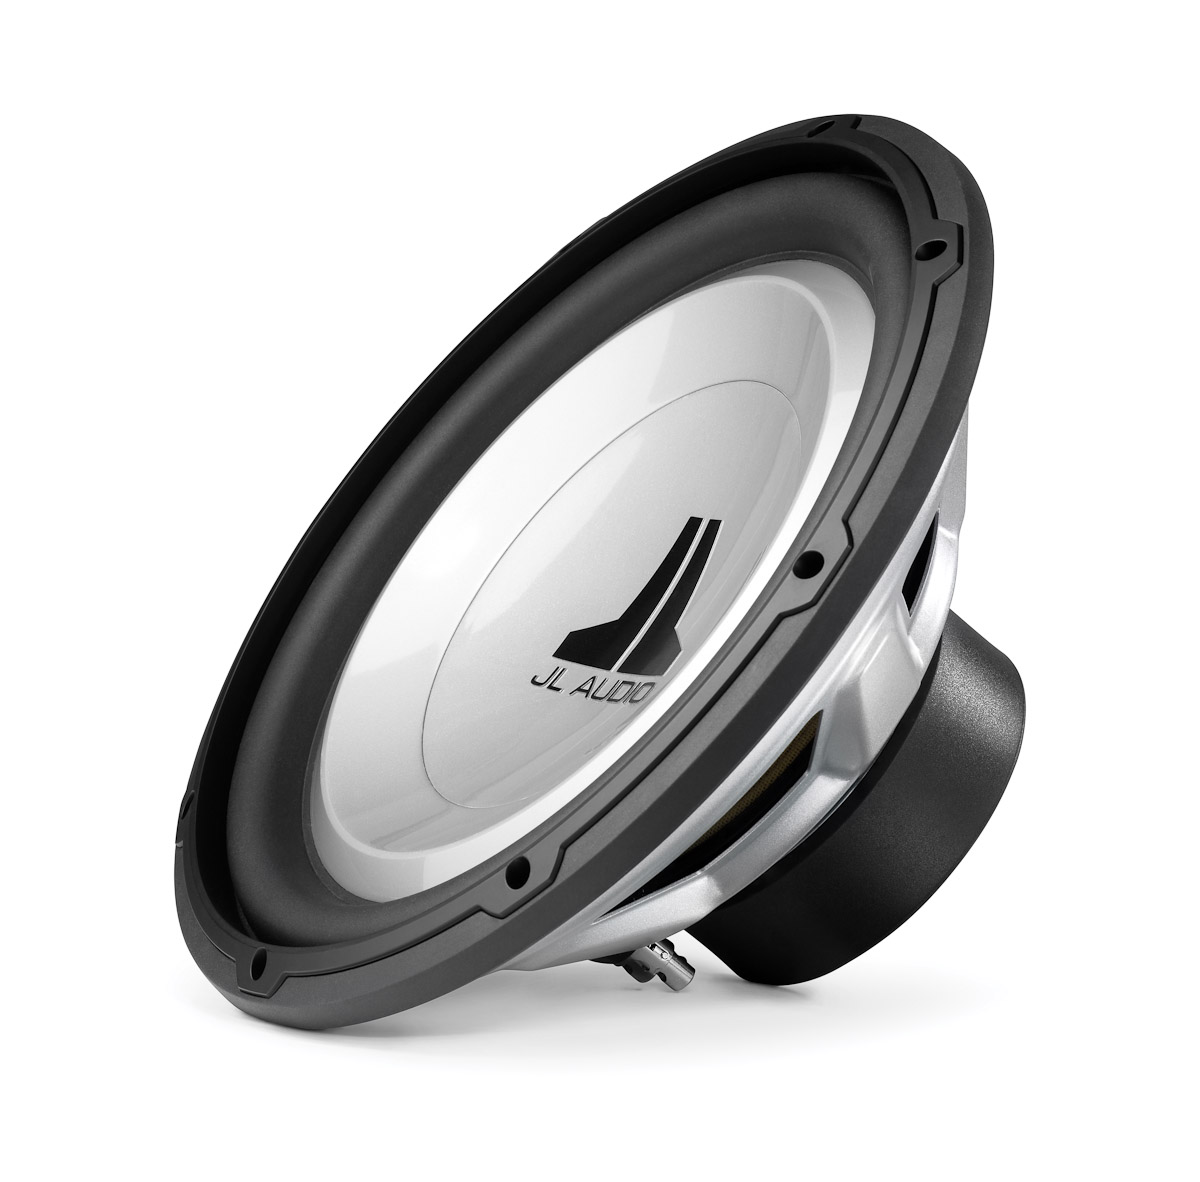 small resolution of 12w1v2 4 12 inch 300 mm subwoofer driver 4